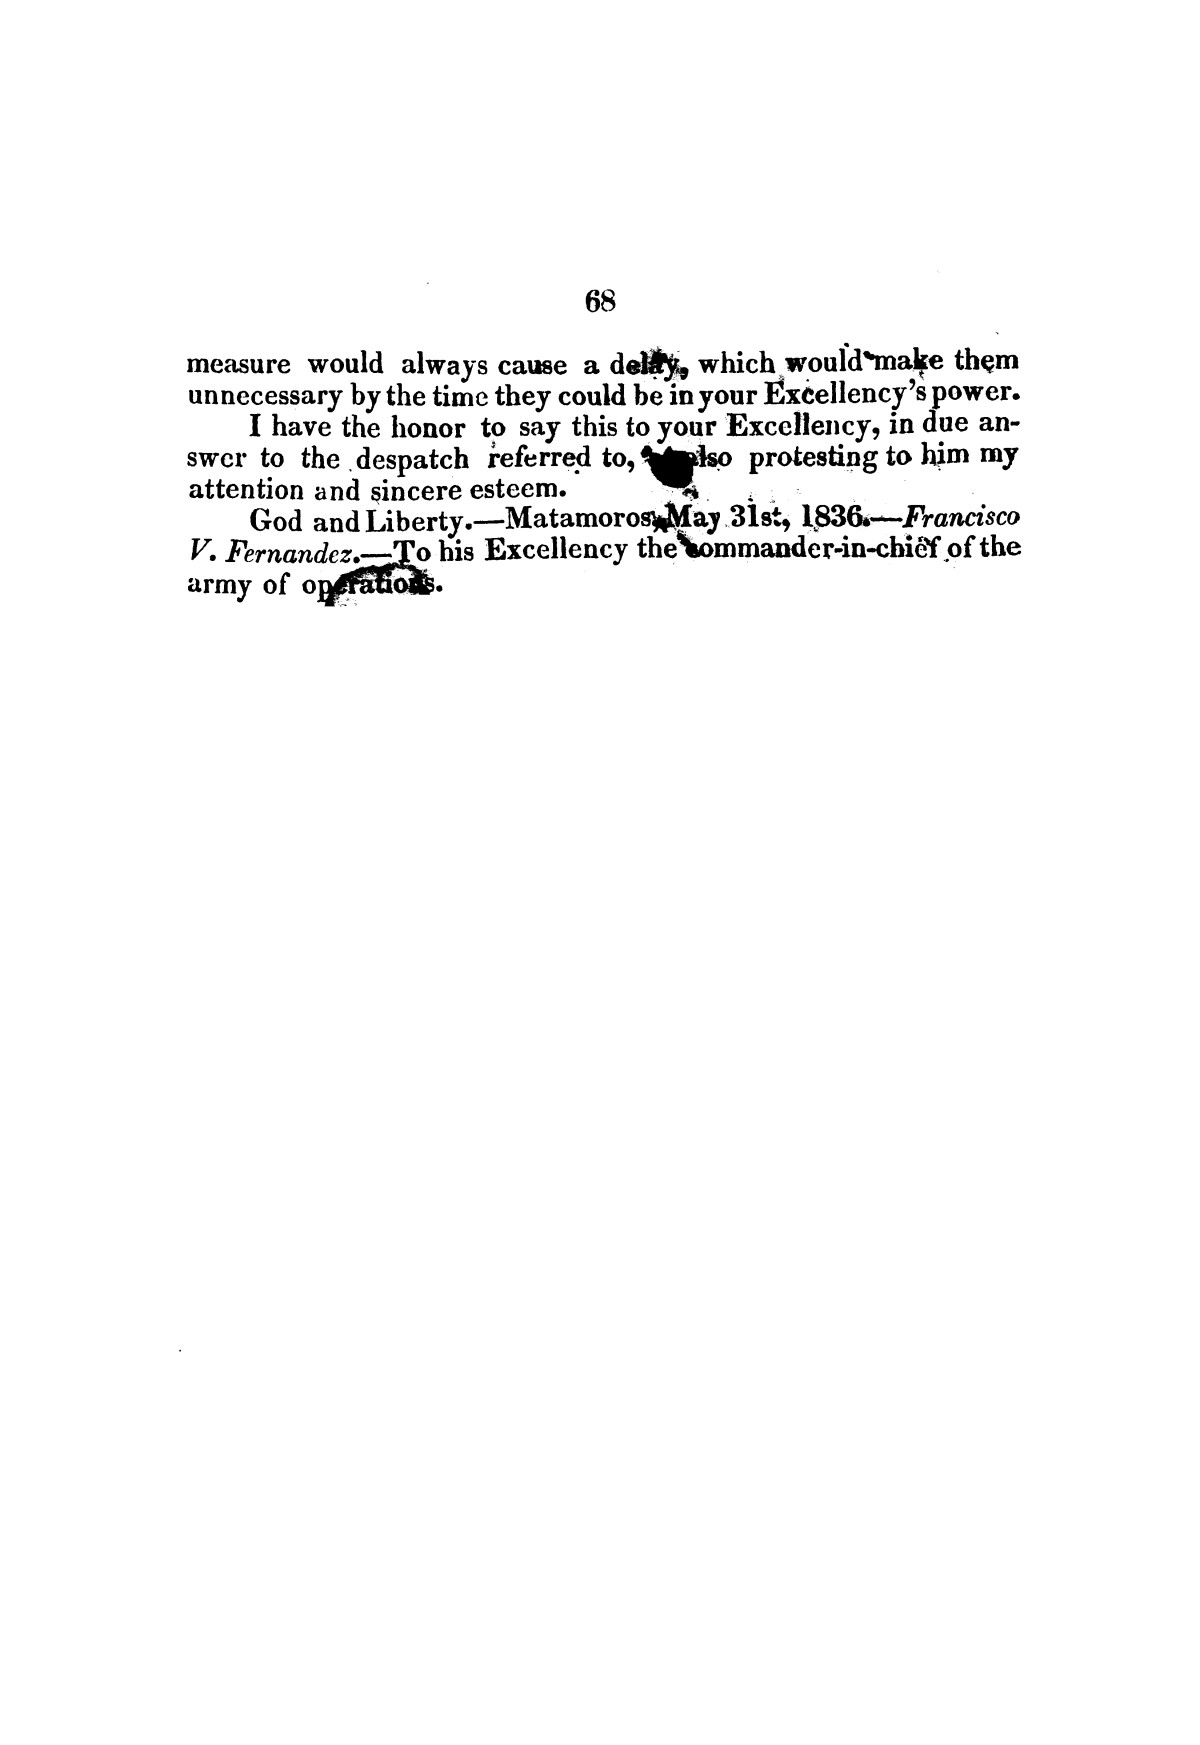 Evacuation of Texas : translation of the Representation addressed to the supreme government / by Vicente Filisola, in defence of his honor, and explanation of his operations as commander-in-chief of the army against Texas.                                                                                                      [Sequence #]: 71 of 72